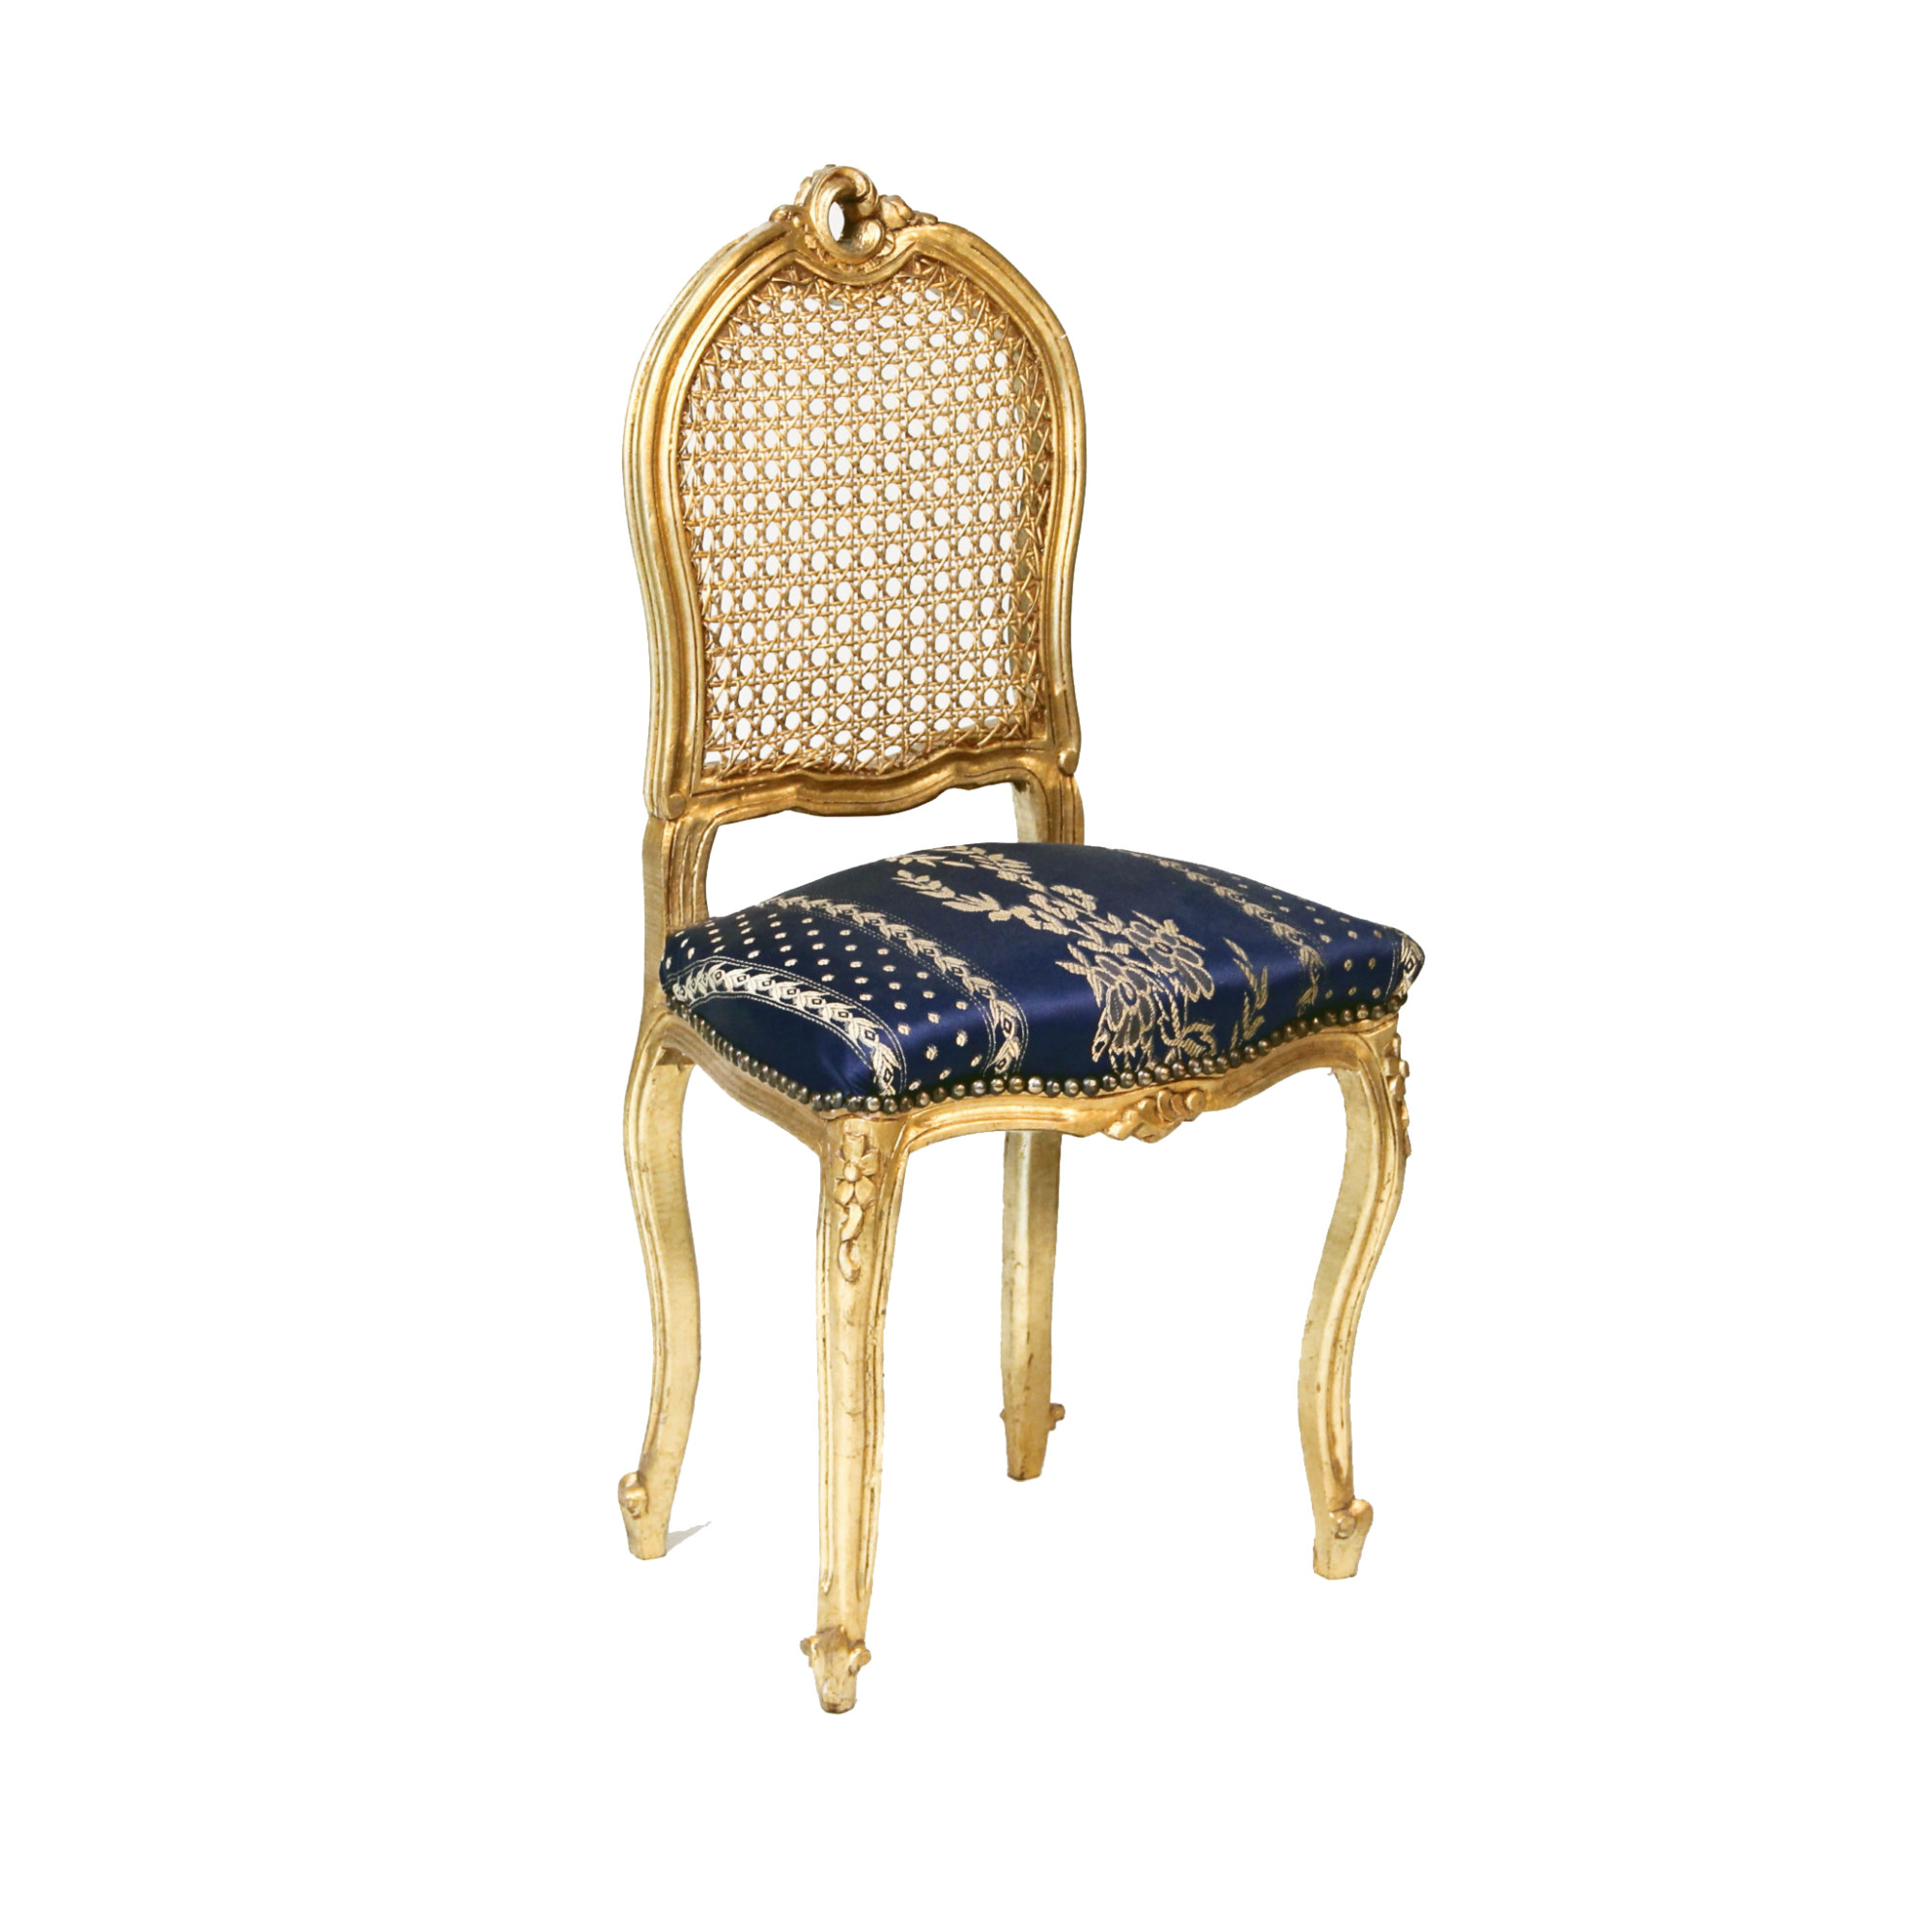 Gold Accent Chairs Gold Cane Blue Seat Accent Chair Peter Corvallis Productions